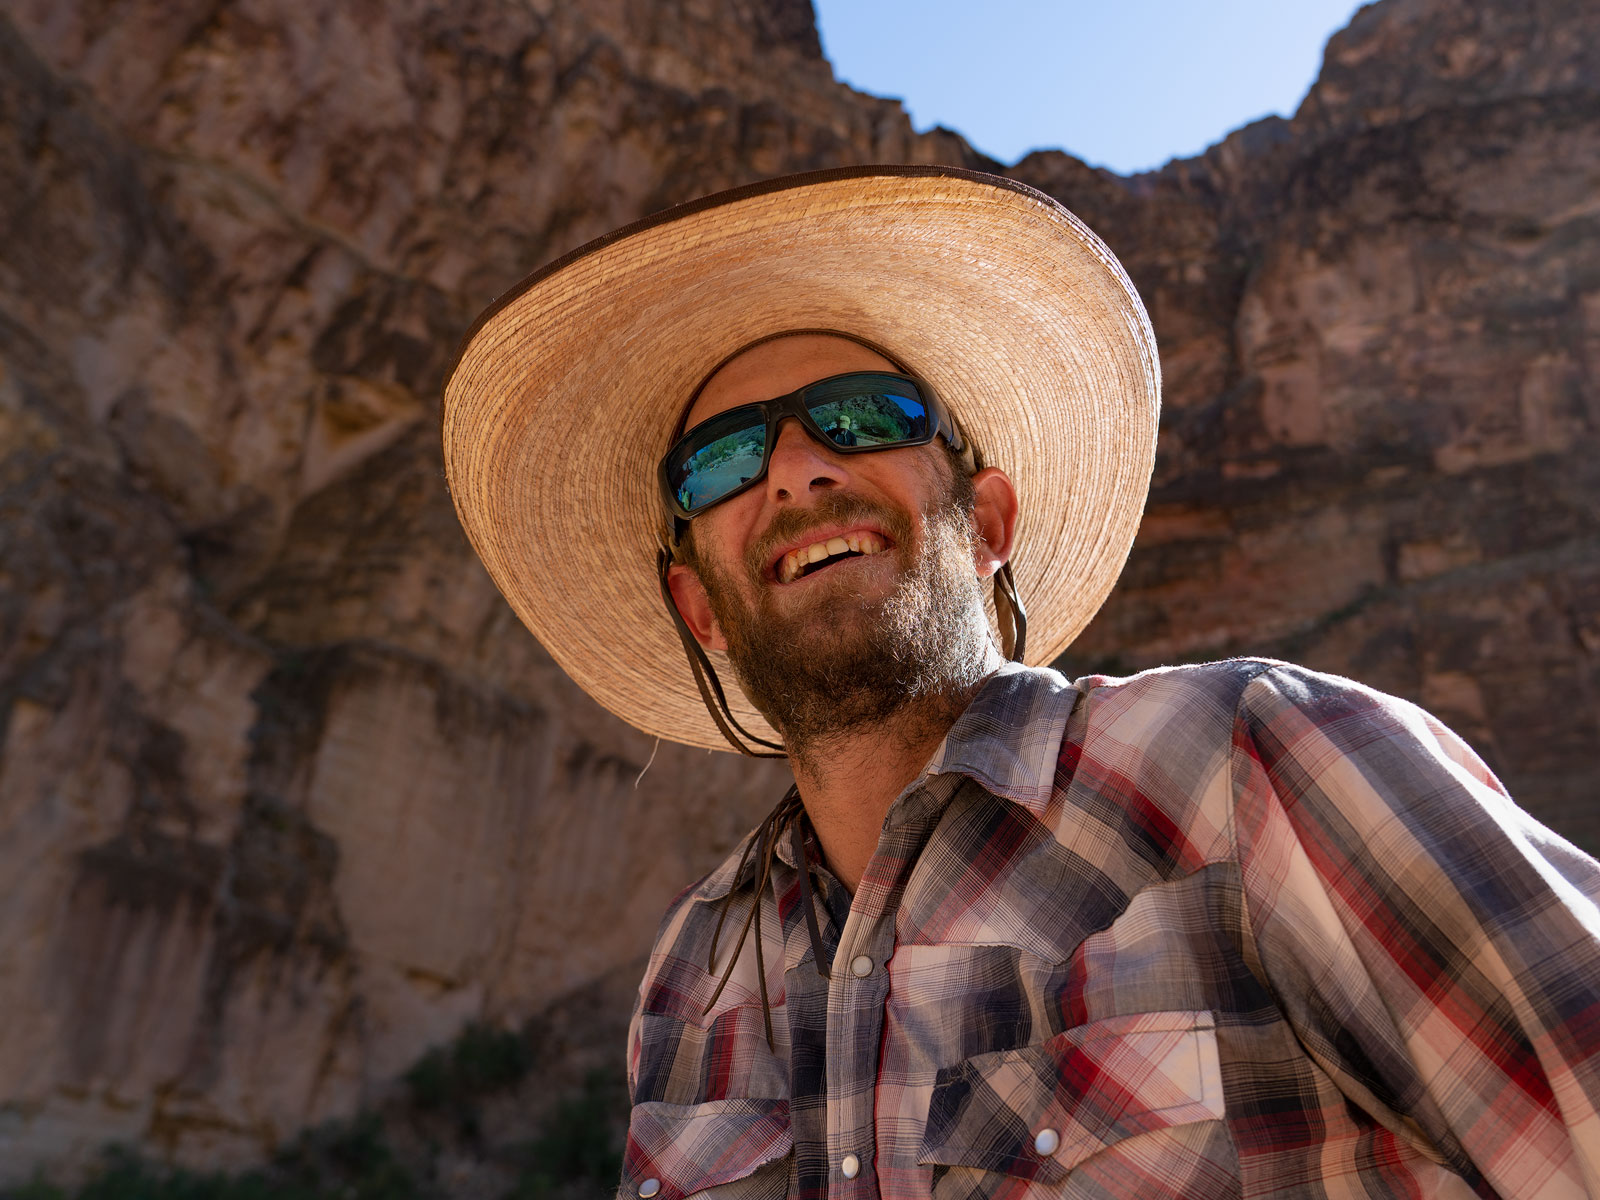 Boatman Patrick Clark smiles after a successful run of Lava Falls Rapid on the Colorado River in Grand Canyon National Park. ©...